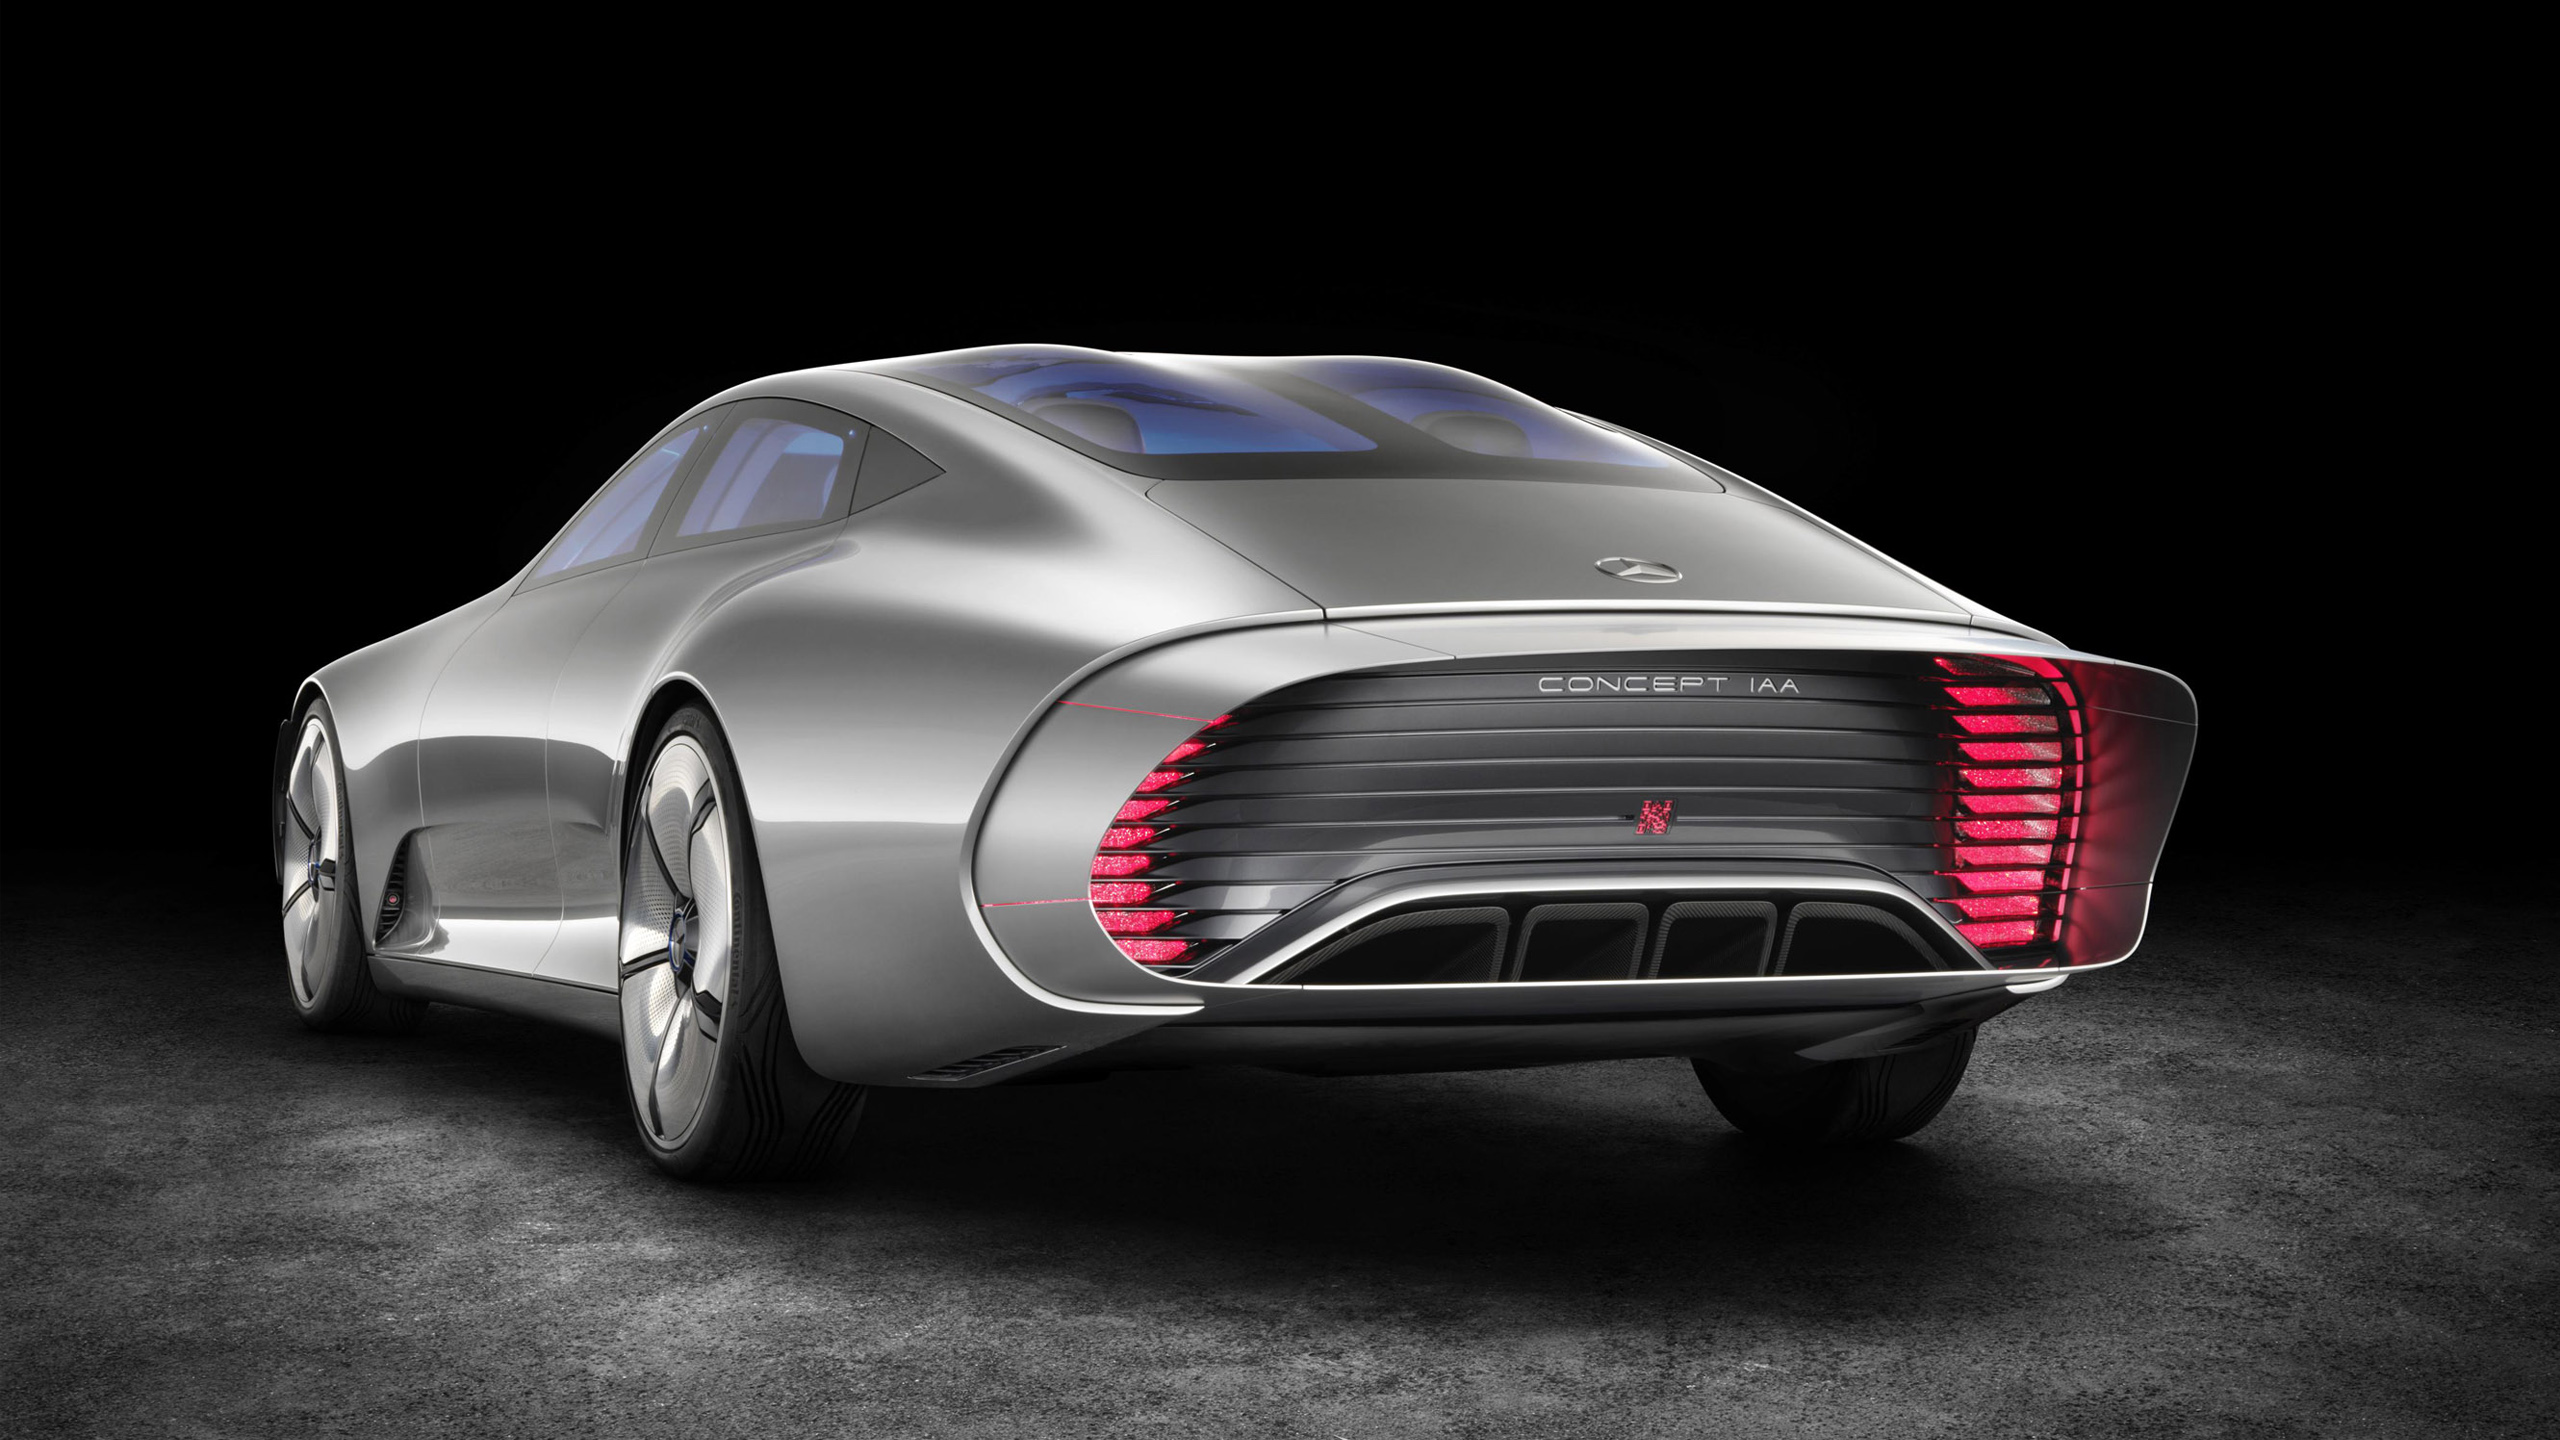 2016 mercedes benz concept iaa 4 wallpaper hd car for Mercedes benz cars pictures